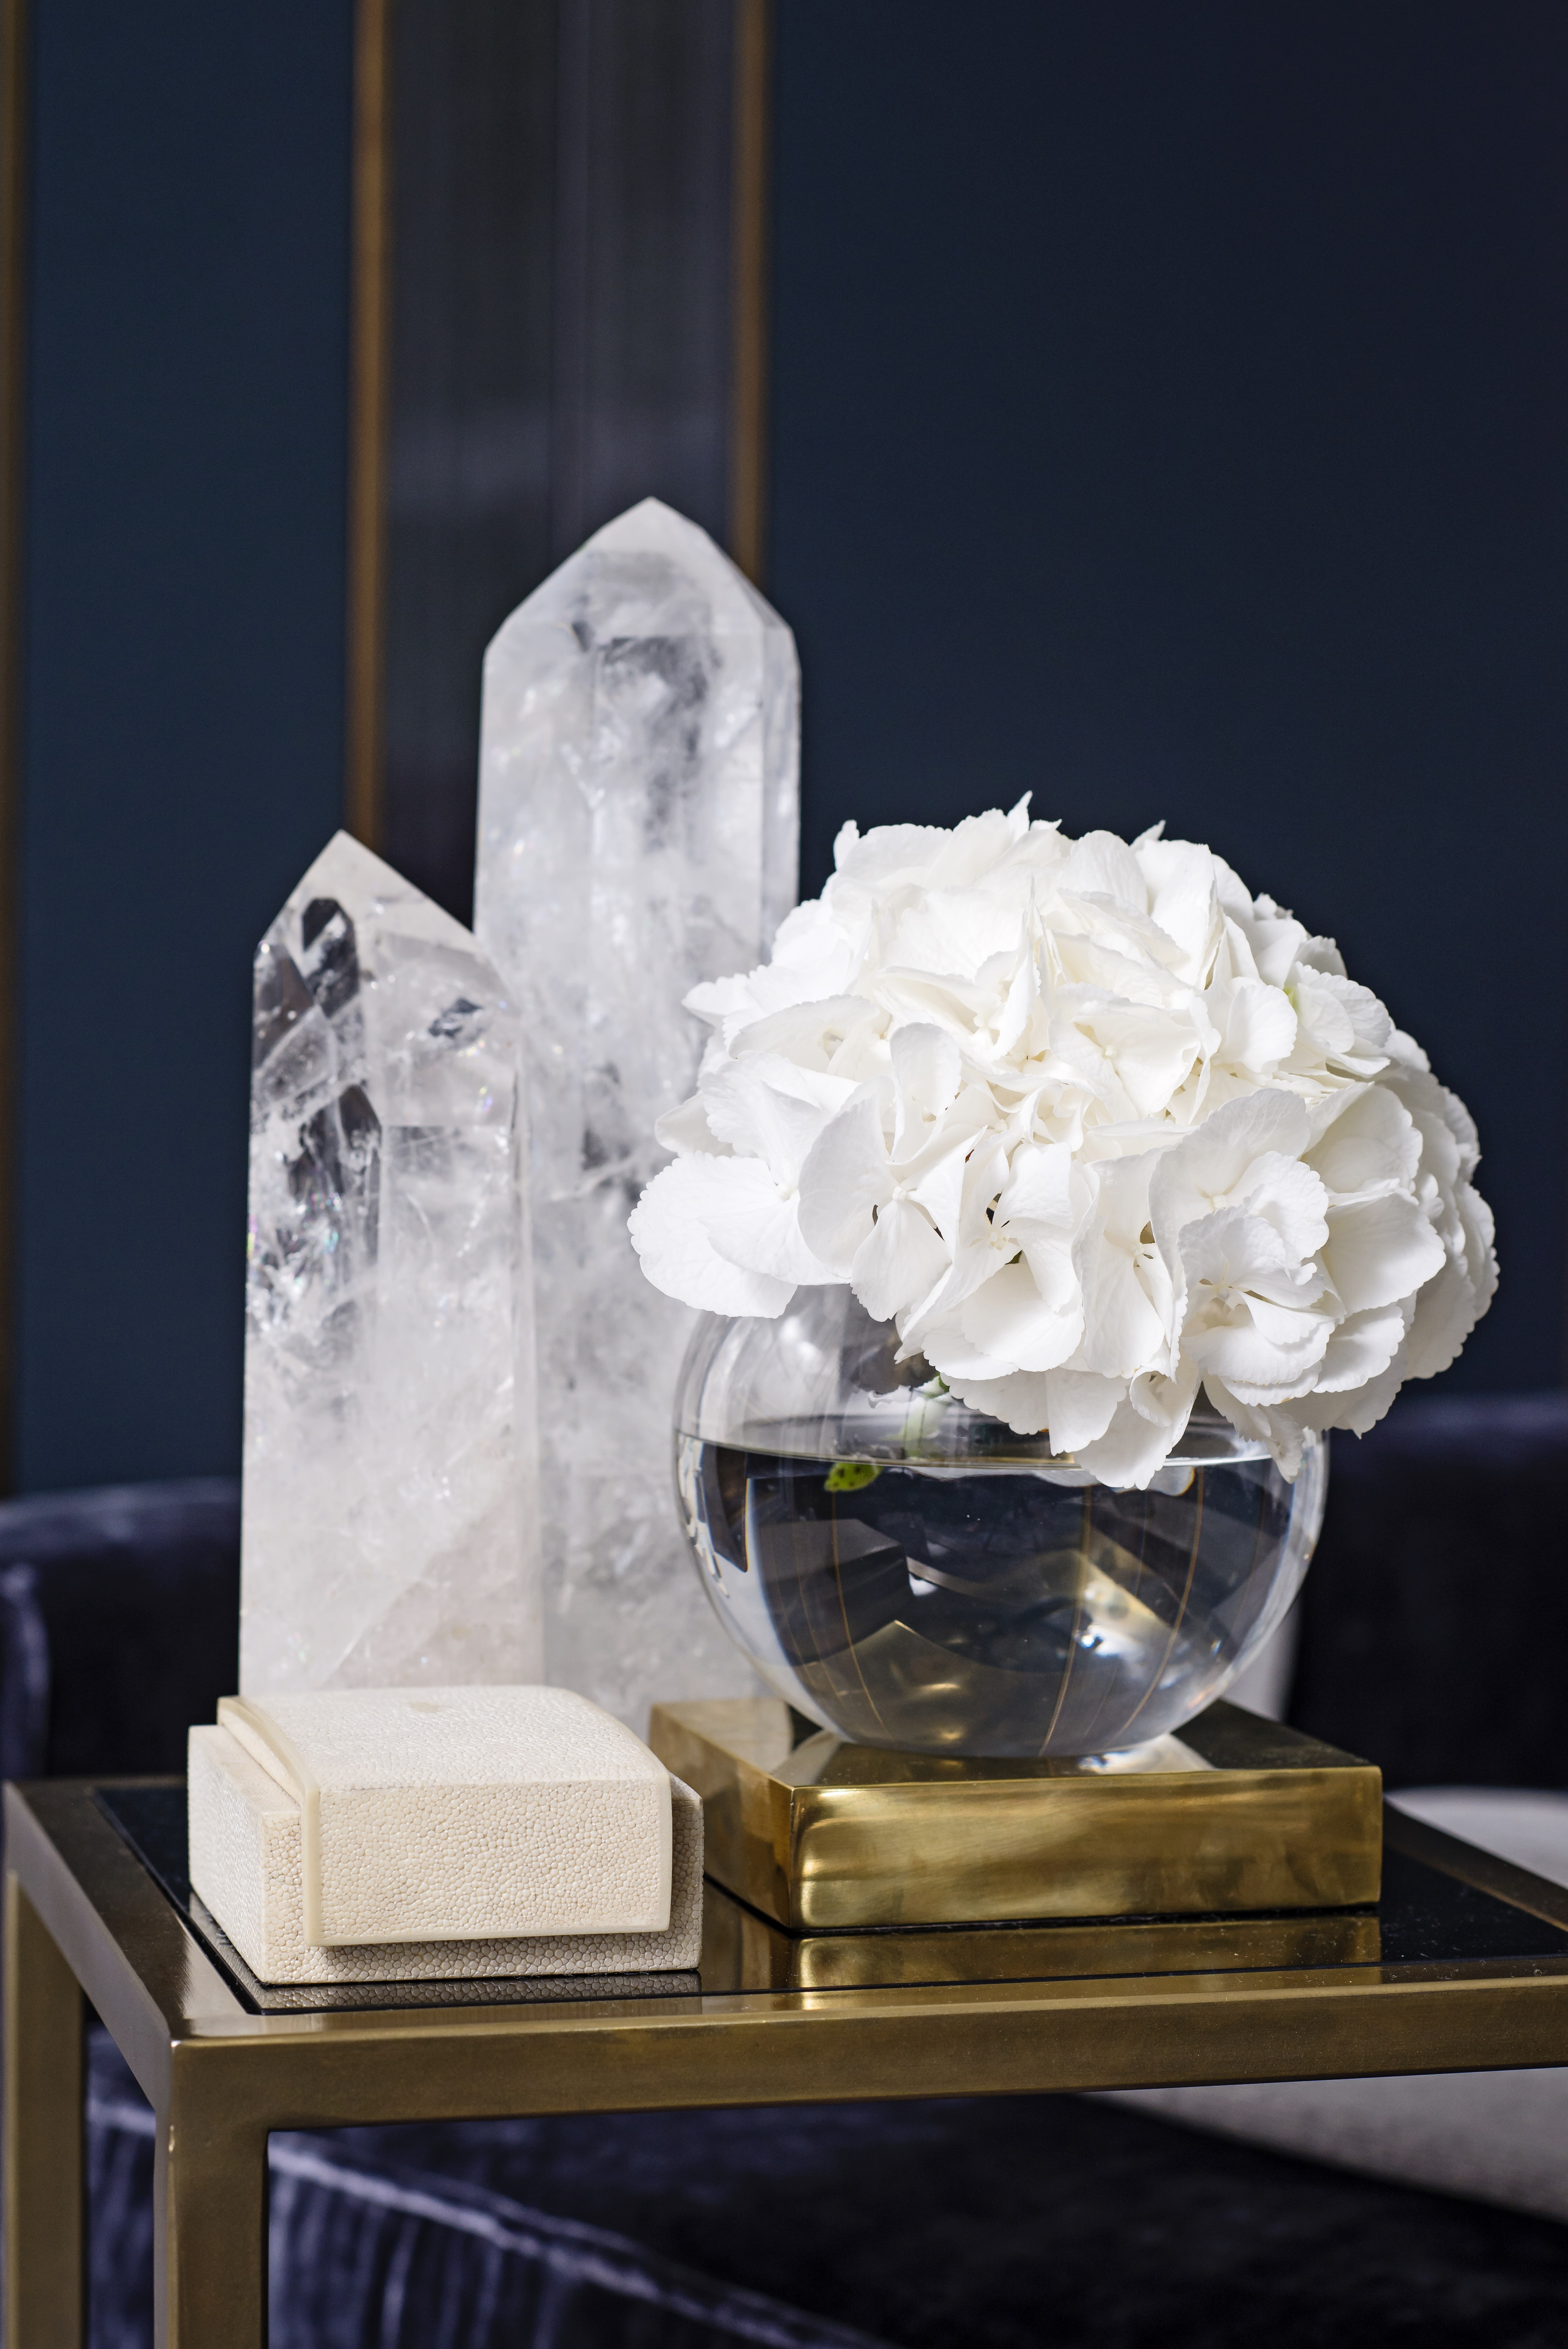 Discover your Accessories Style | Decor Styling Ideas | LuxDeco.com Style Guide